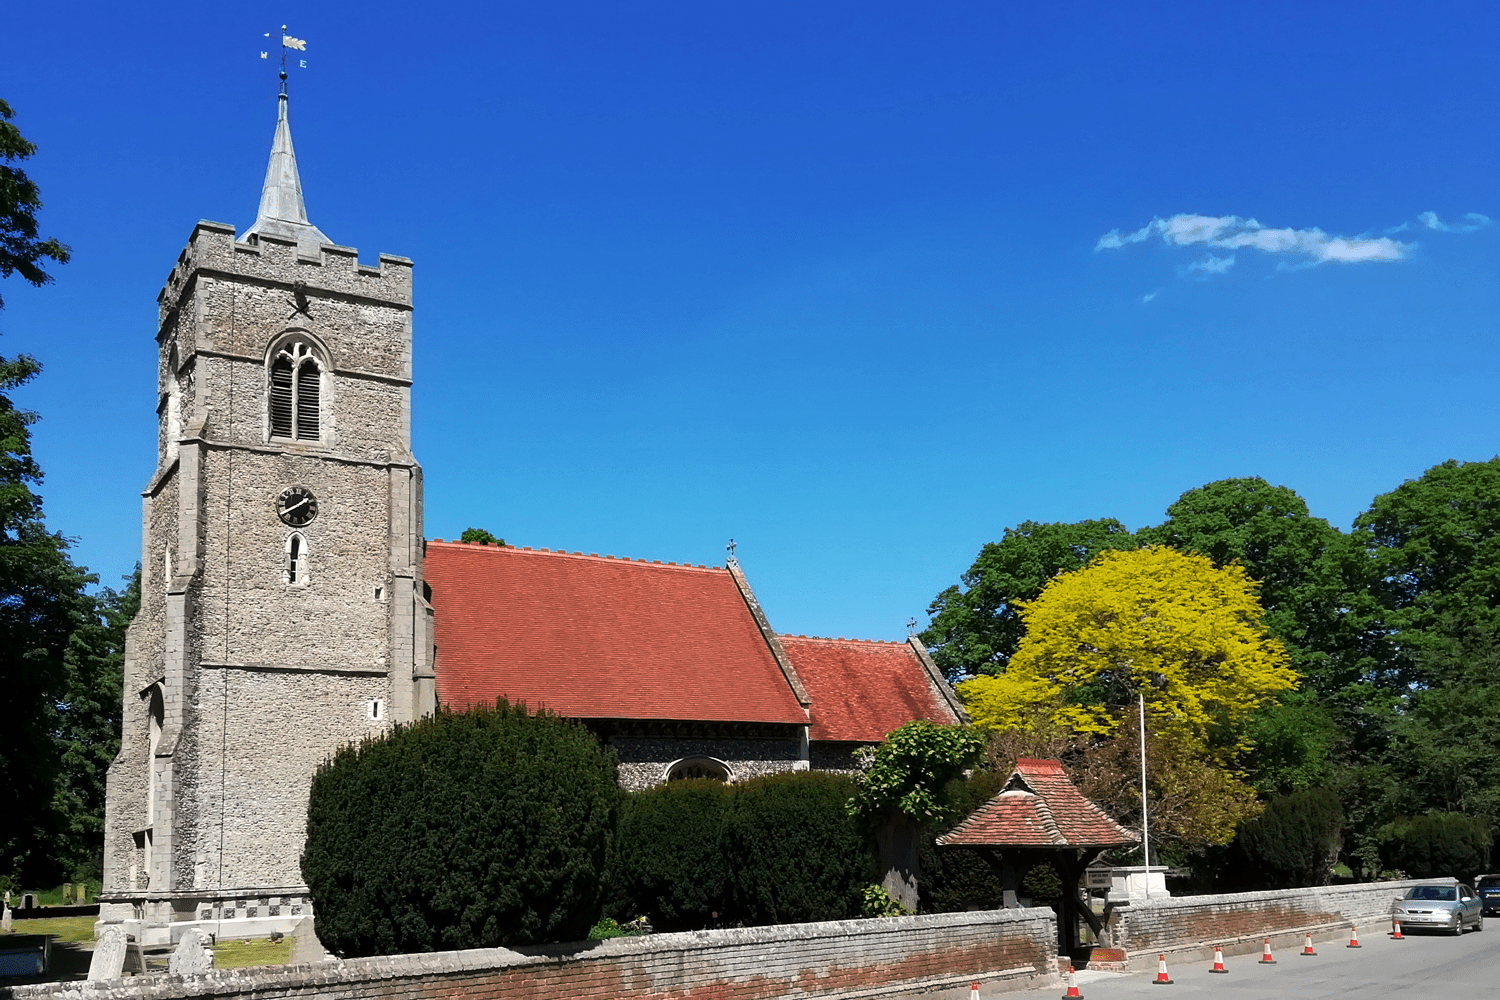 A picture of the front exterior of St. Mary's the Virgin Church, Westmill.